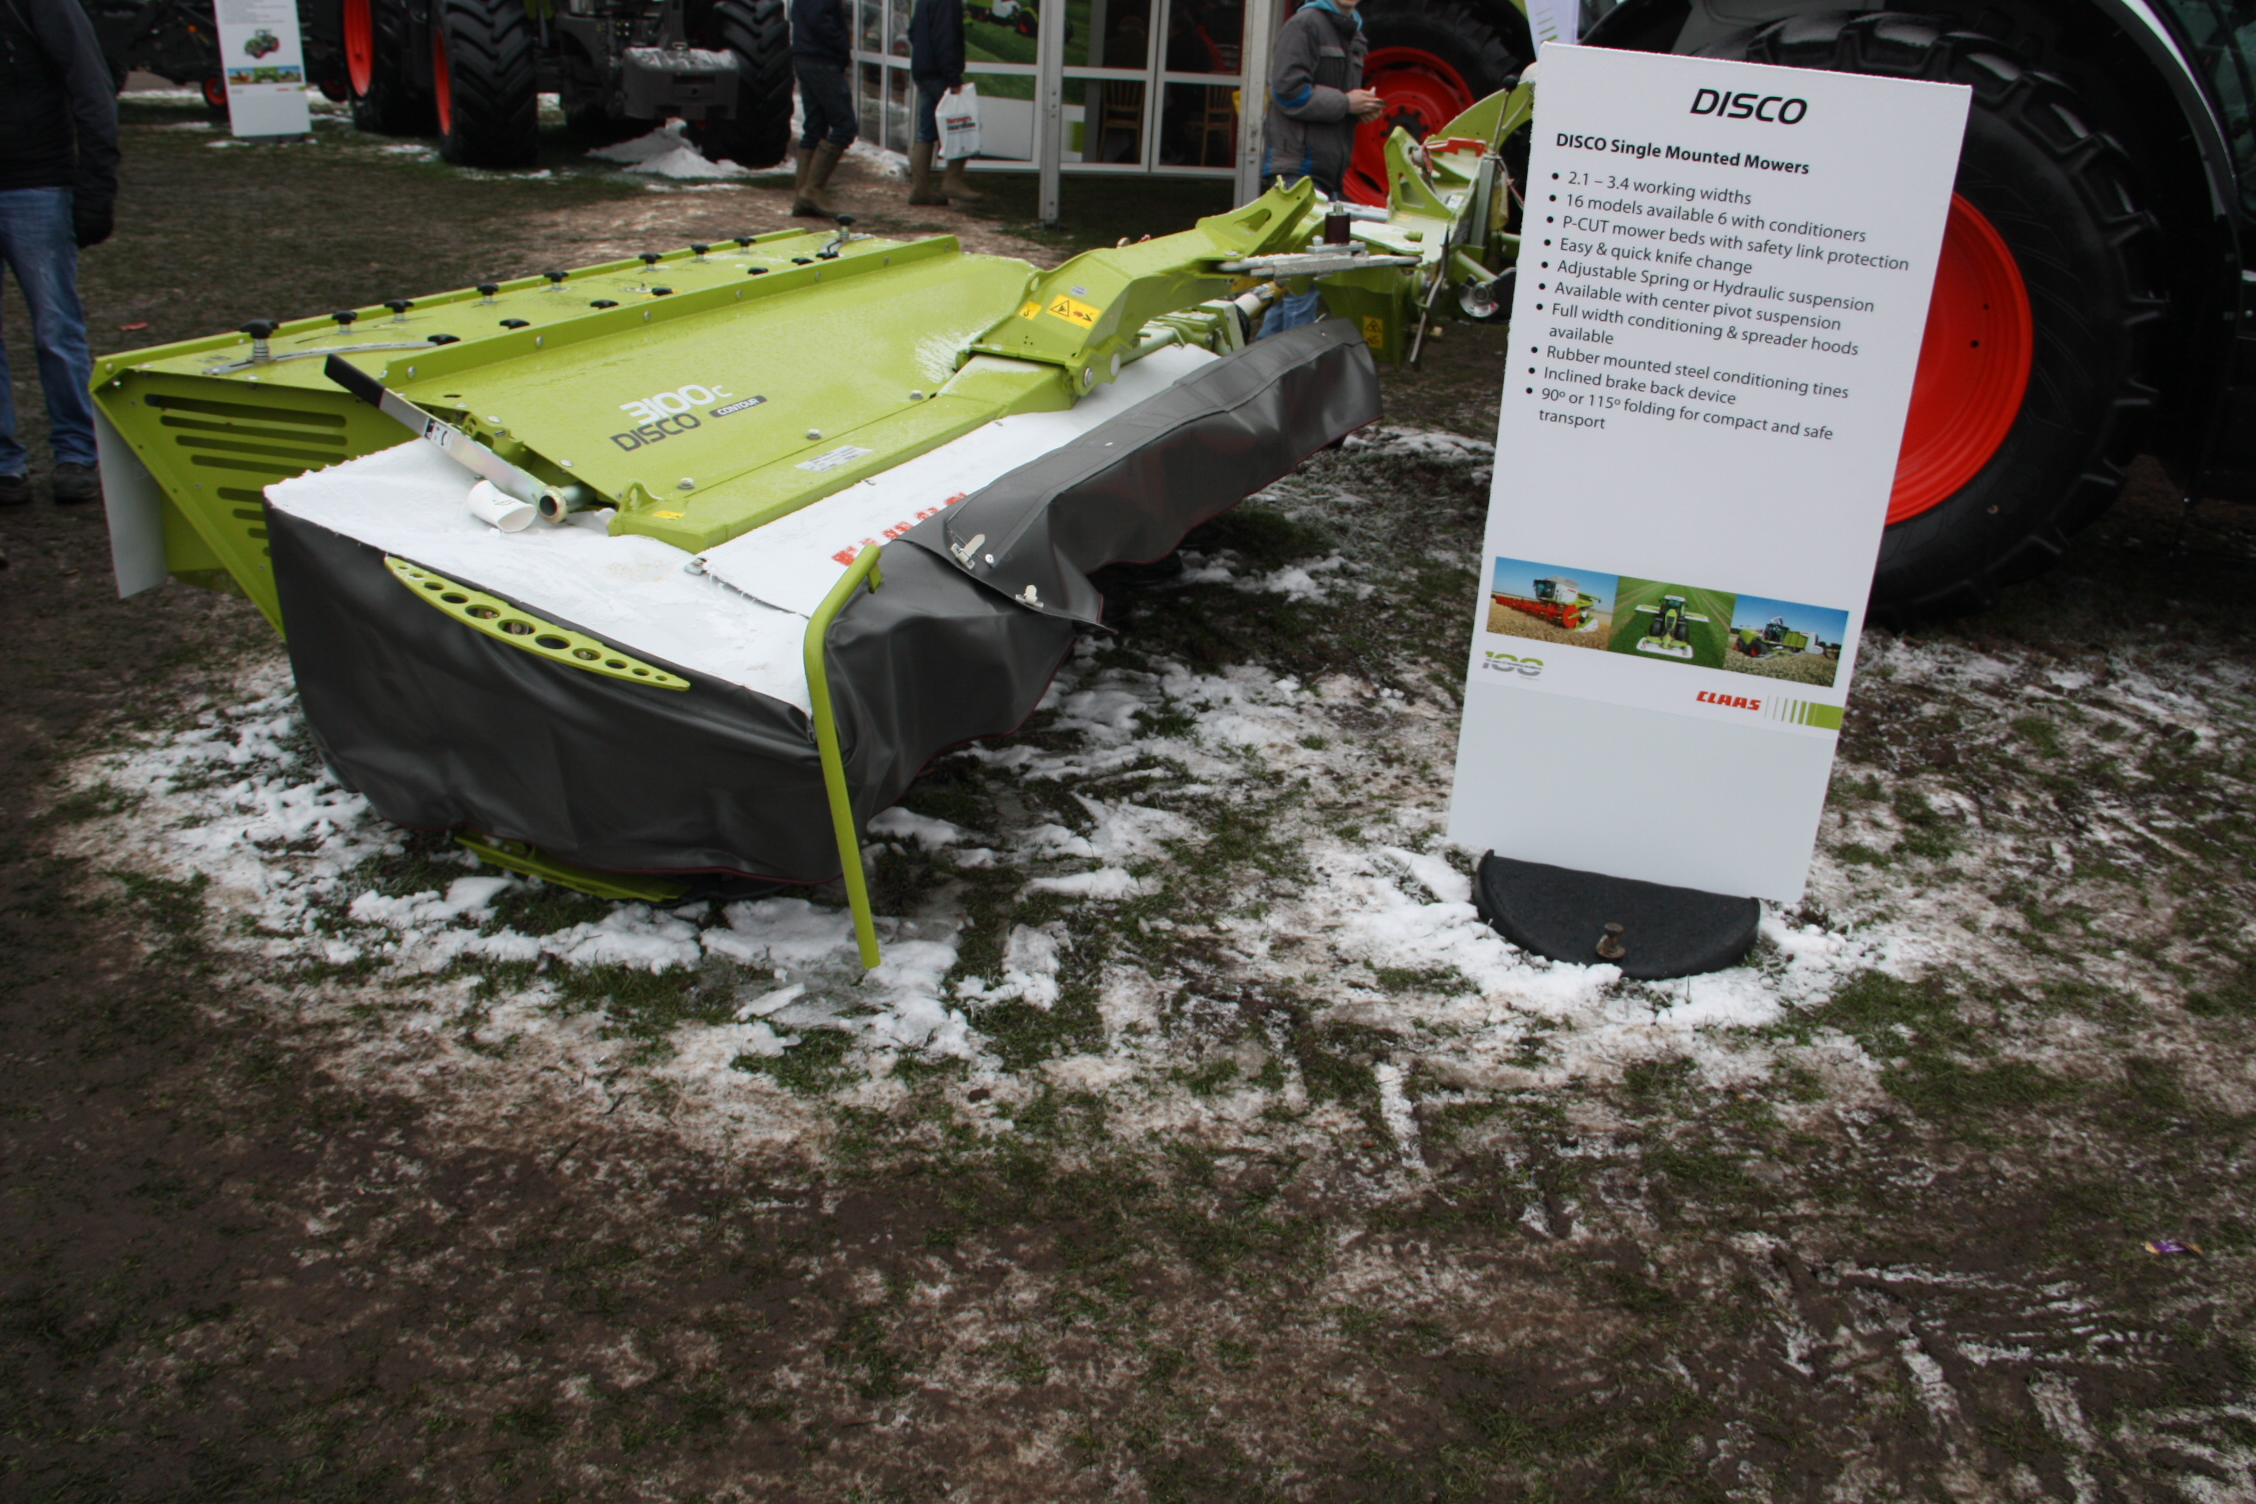 Claas mower rangeFan Feed